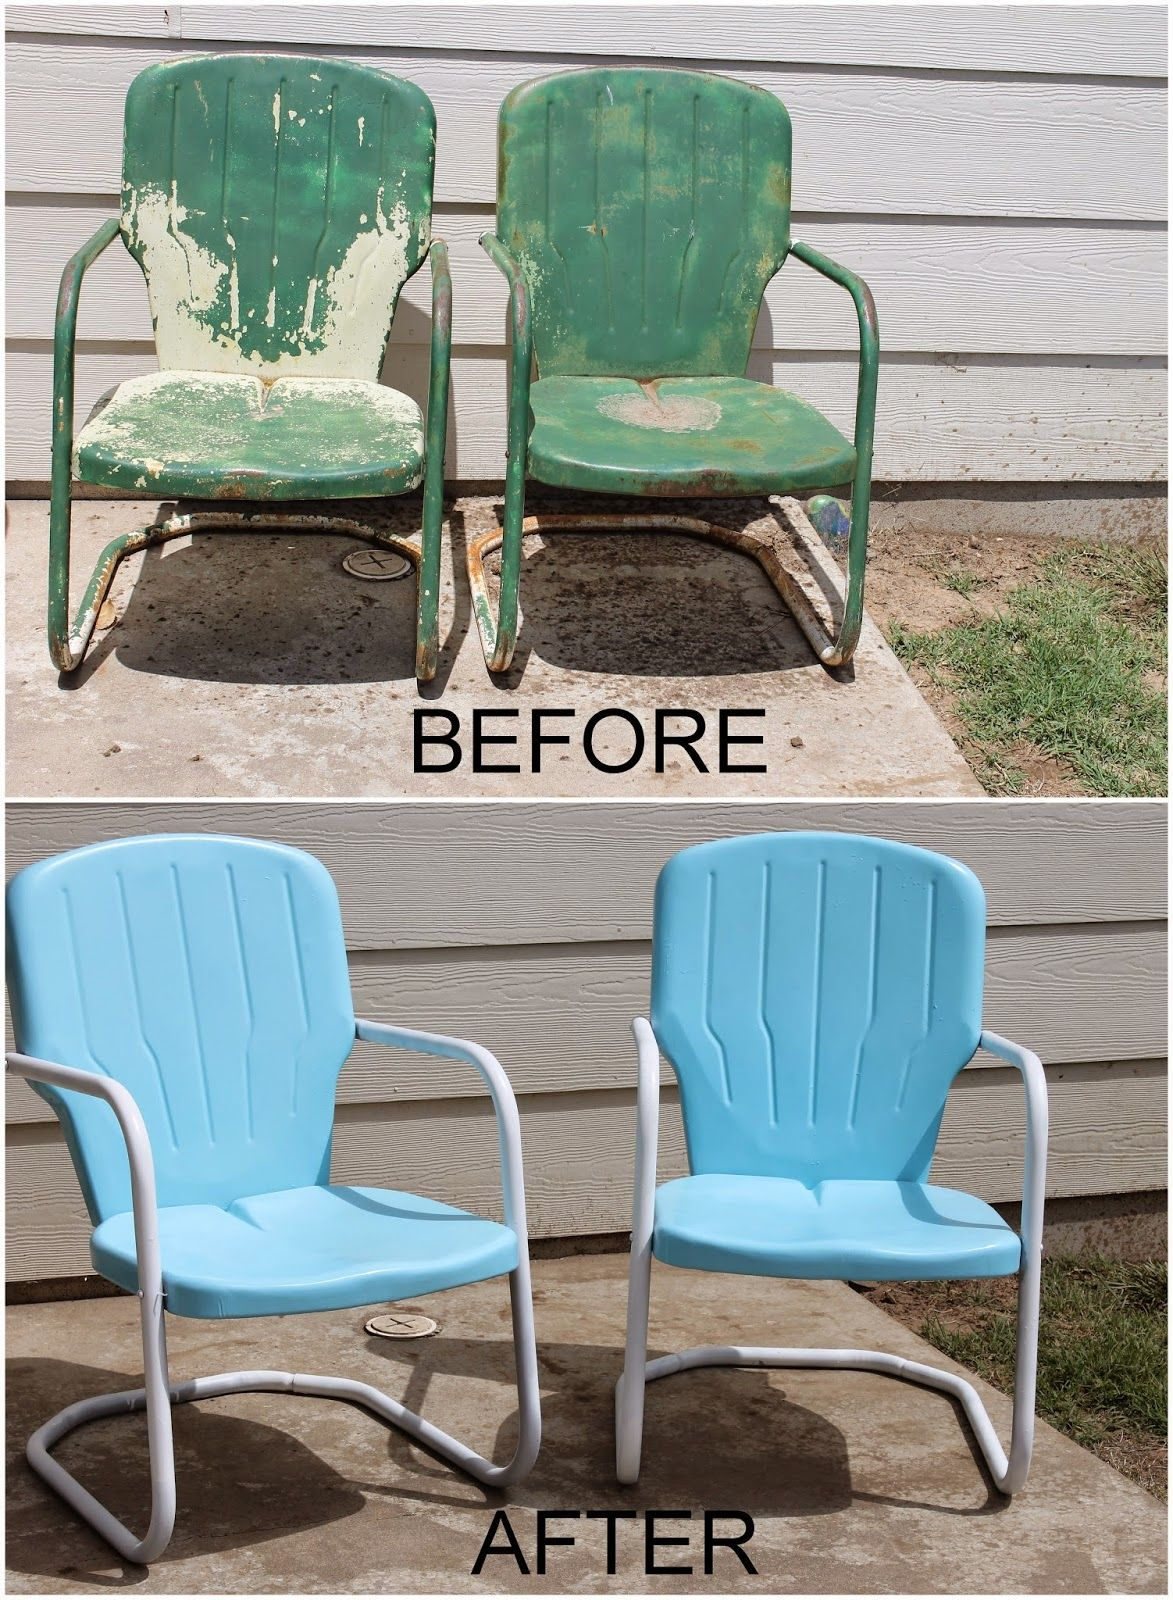 Outdoor Metal Chairs Get A New Look